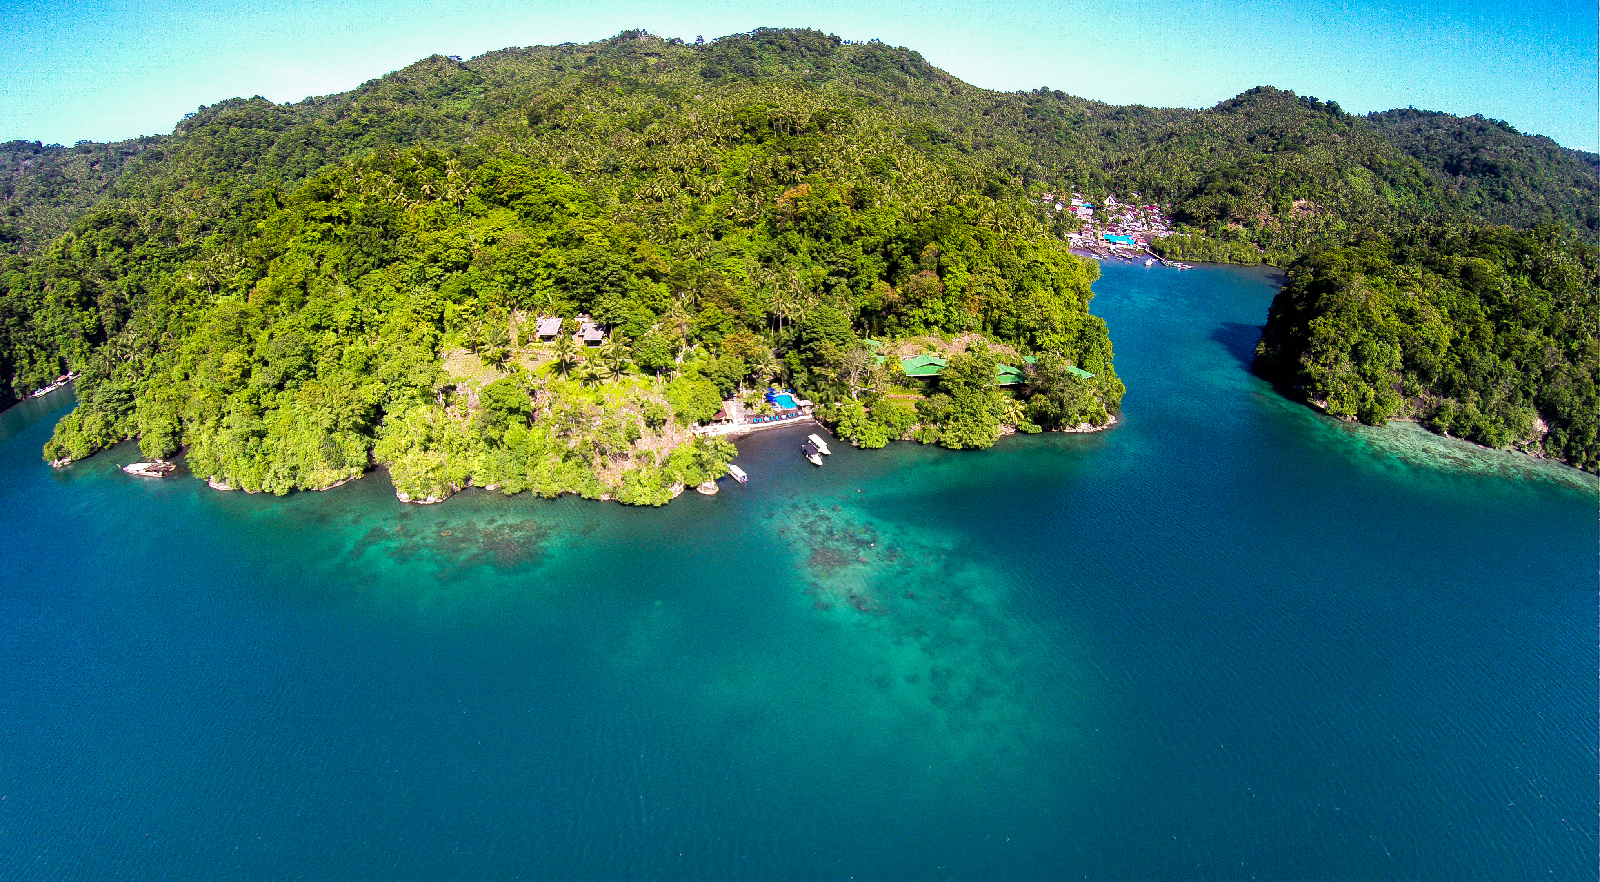 A Bird's Eye View of our Resort at Lembeh